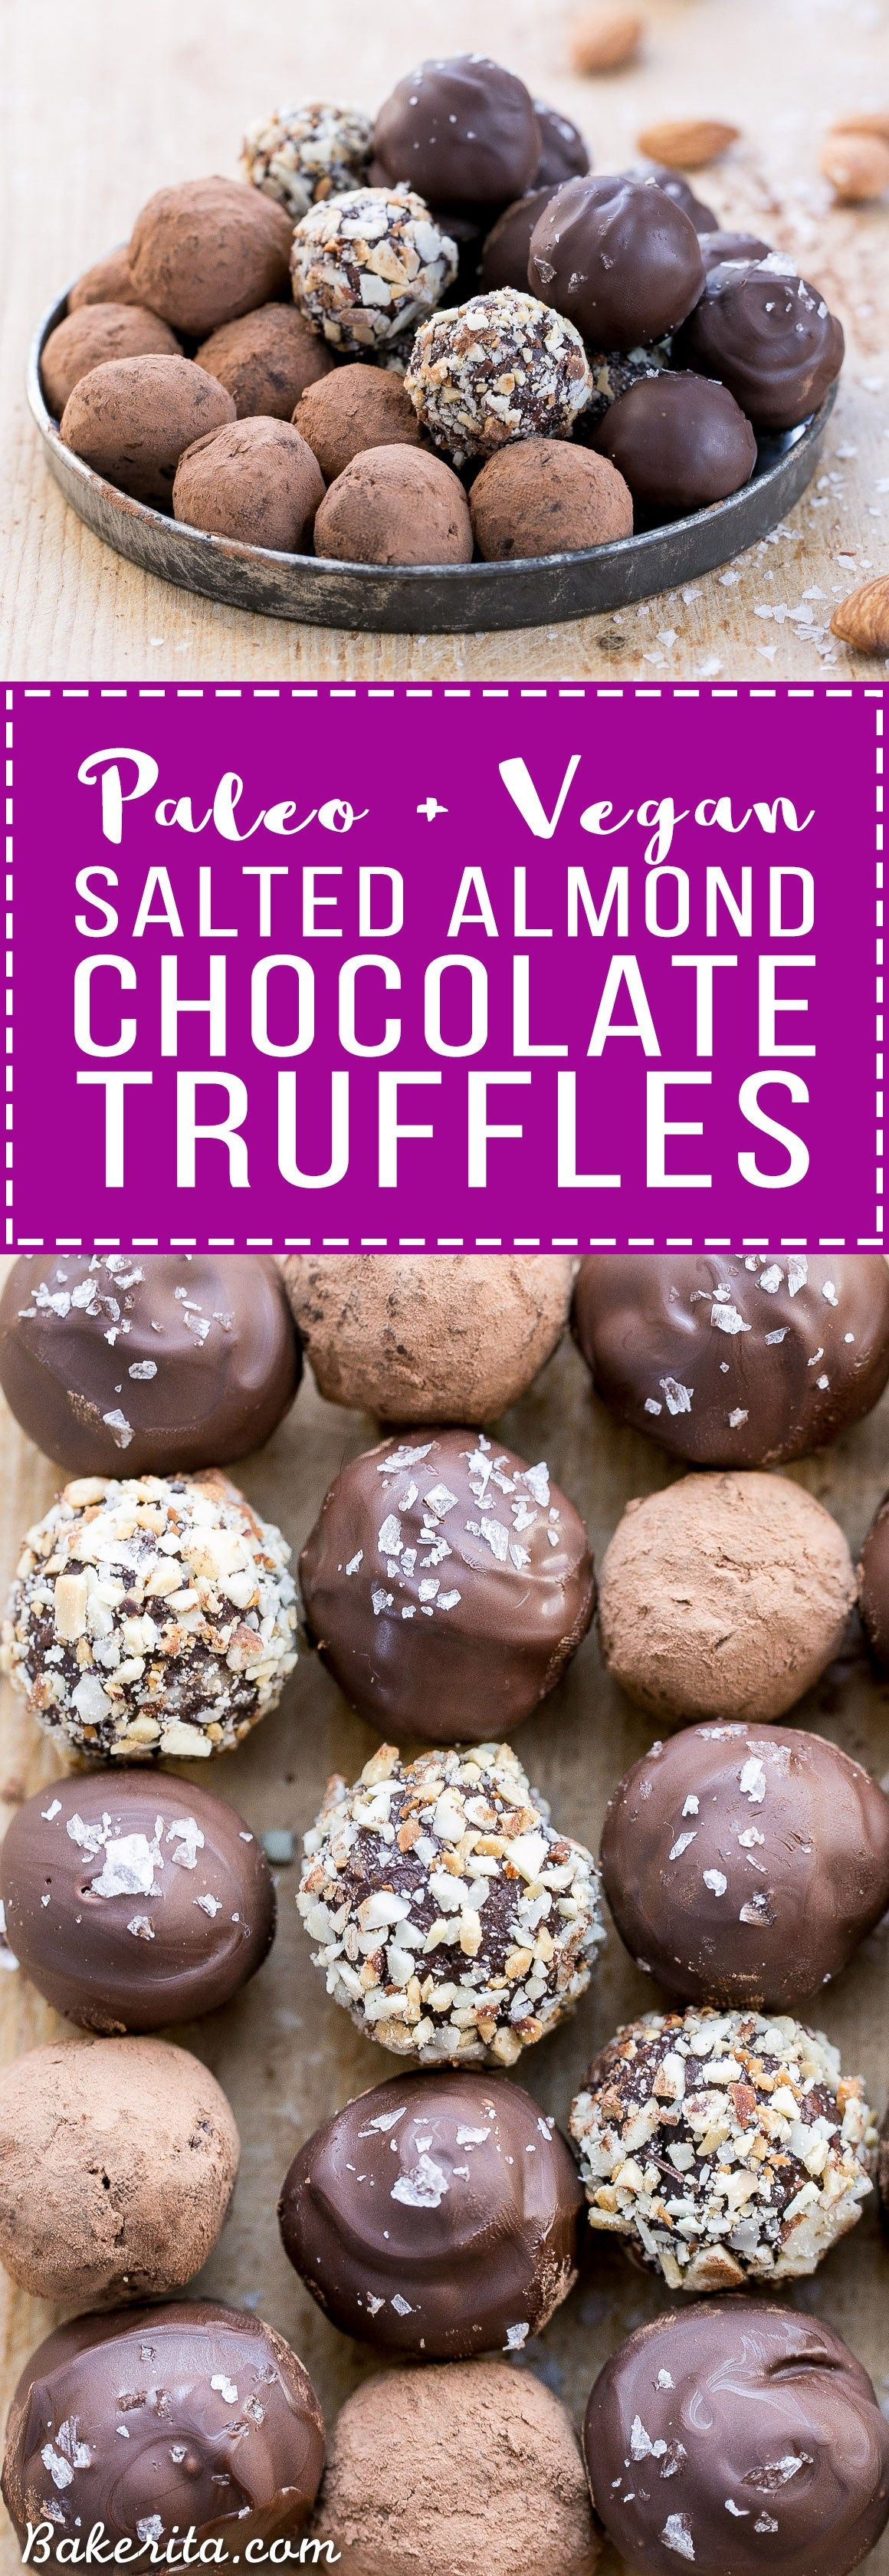 With Toasted Almonds For Crunch And A Sprinkle Of Sea Salt